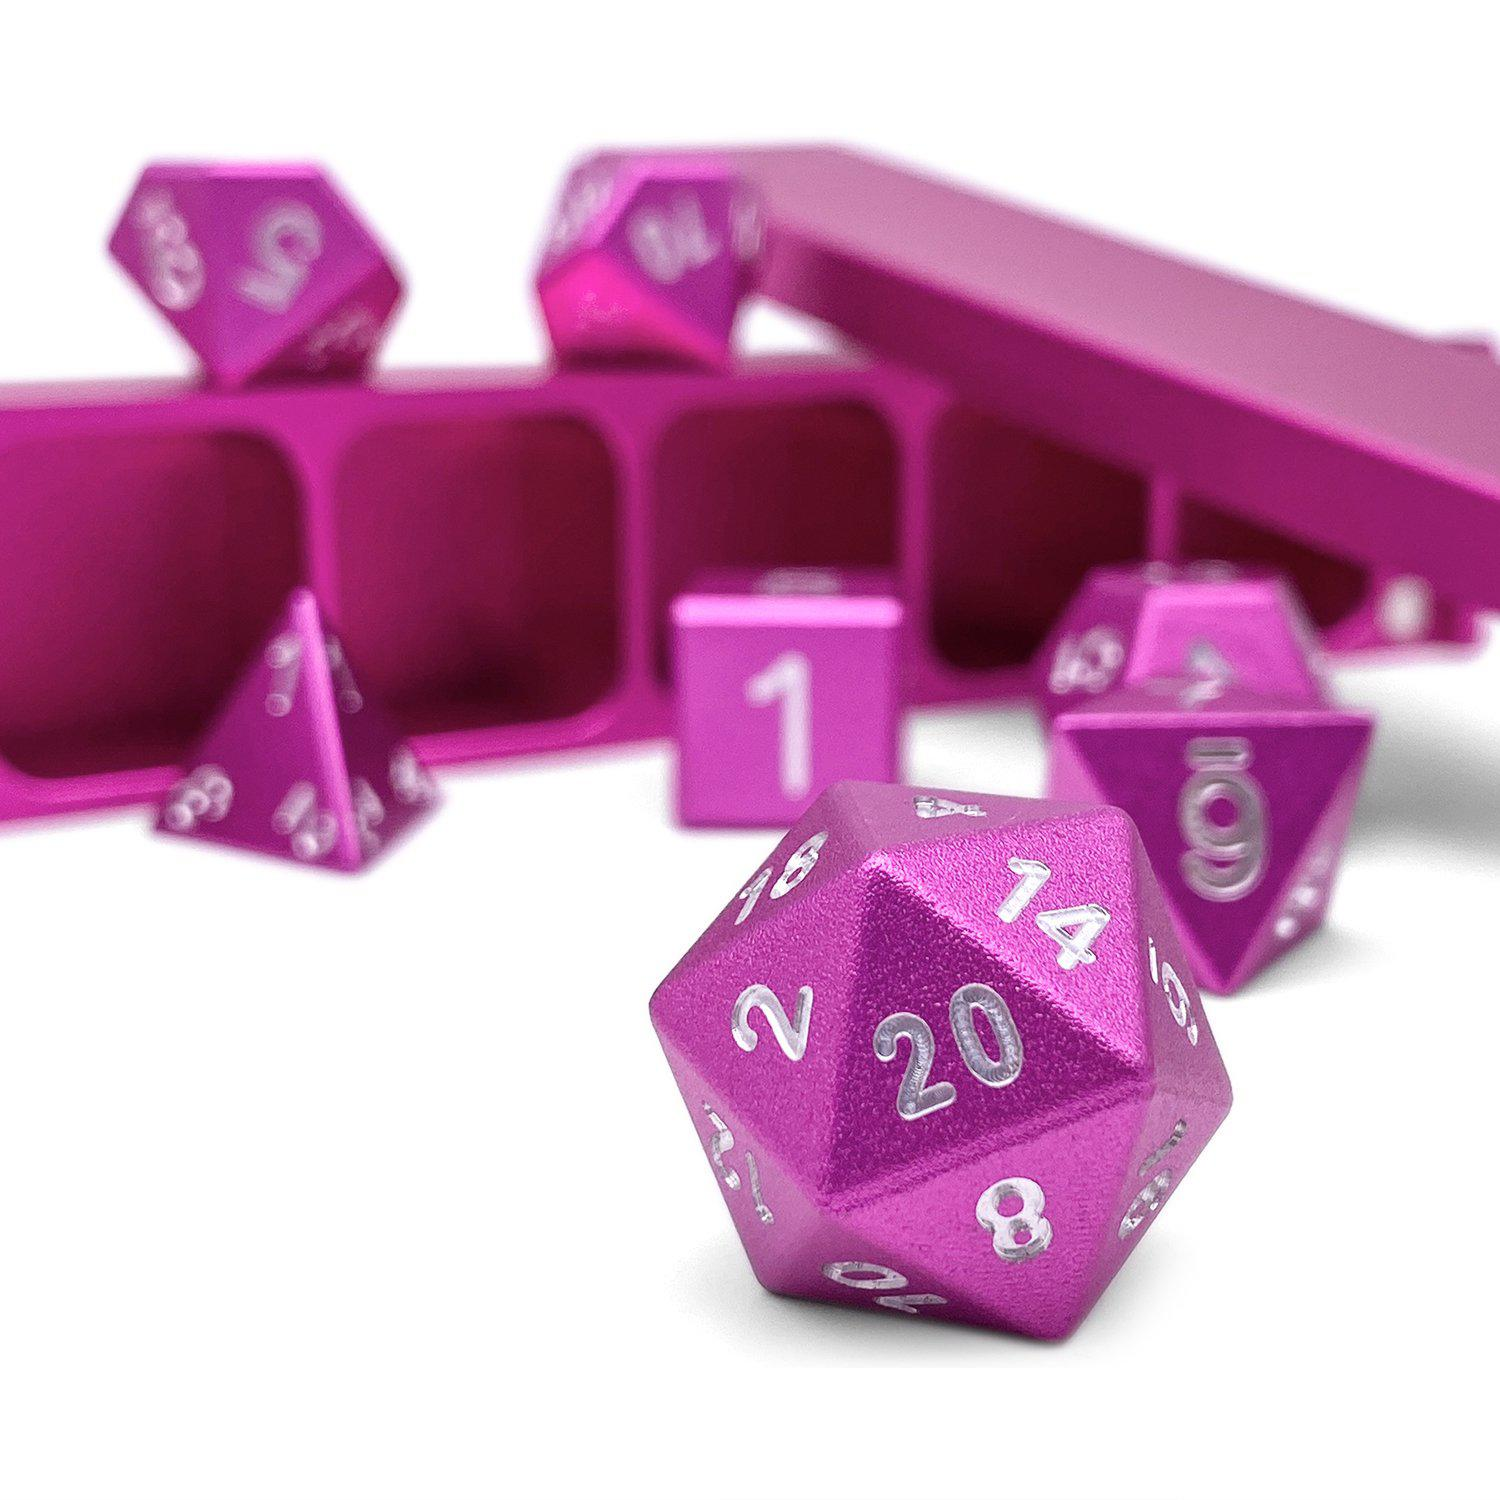 Potion Pink - Precision CNC Aluminum Dice Set with Dice Vault